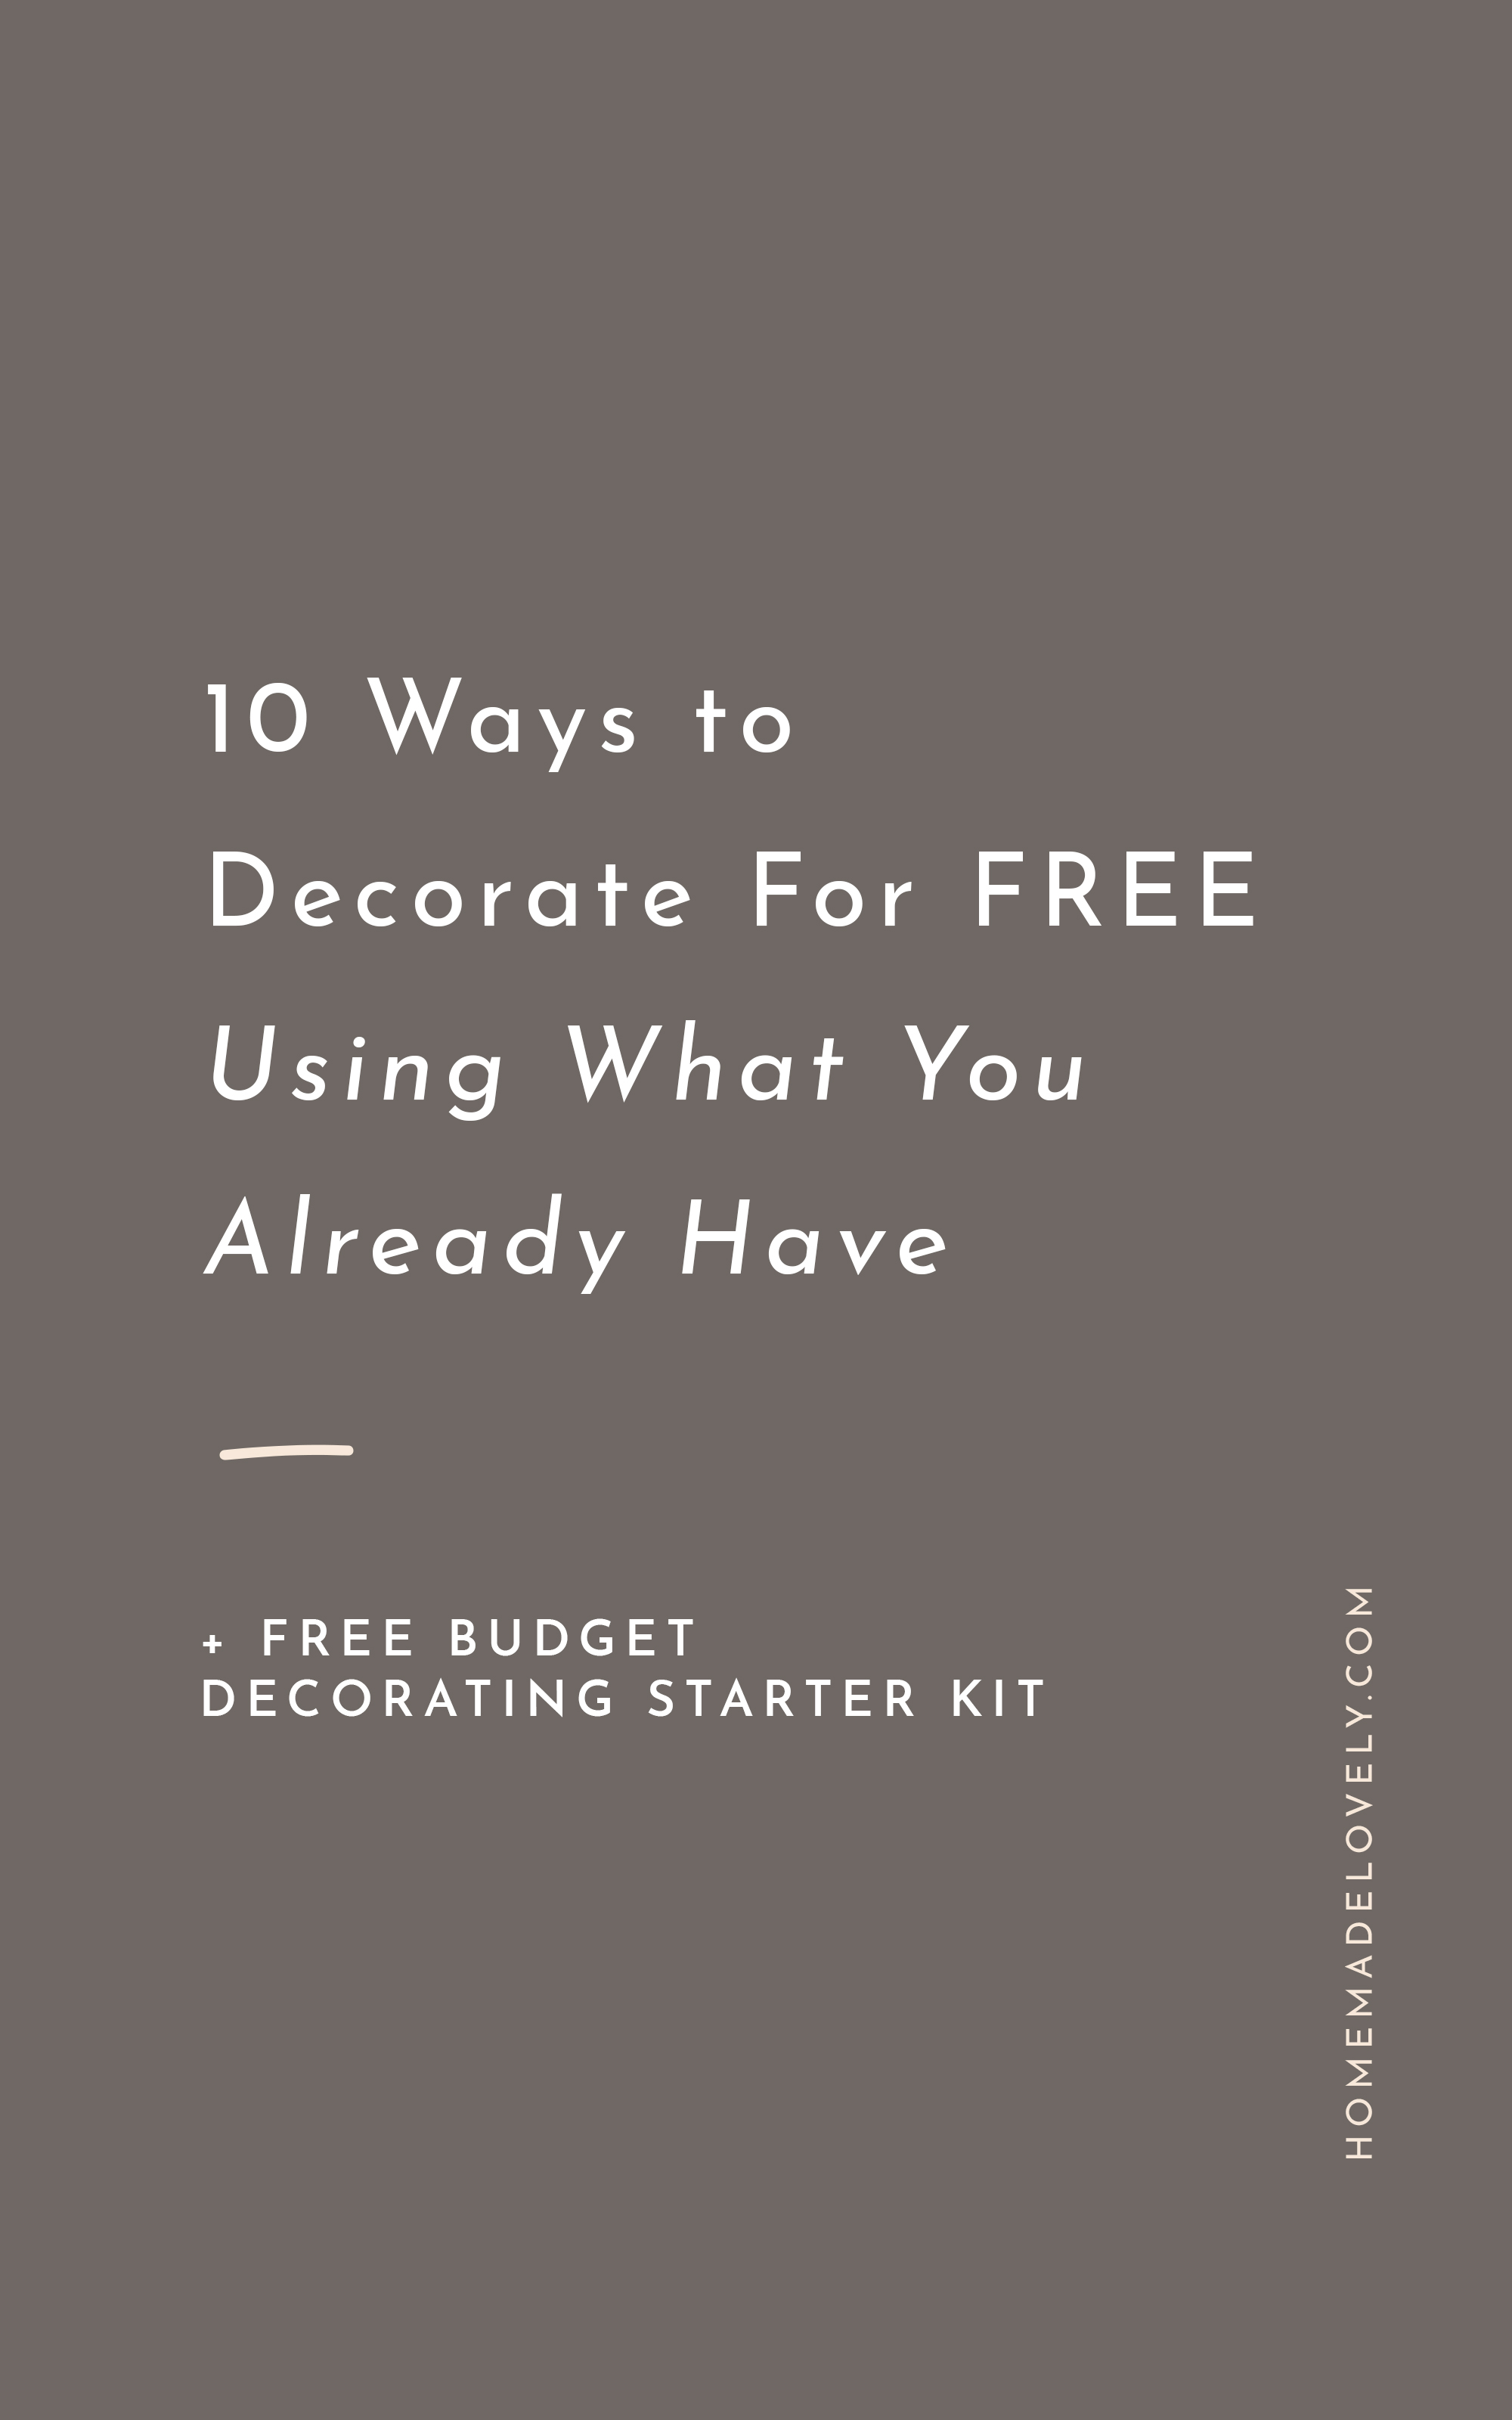 10 ways to decorate for free text over gray background